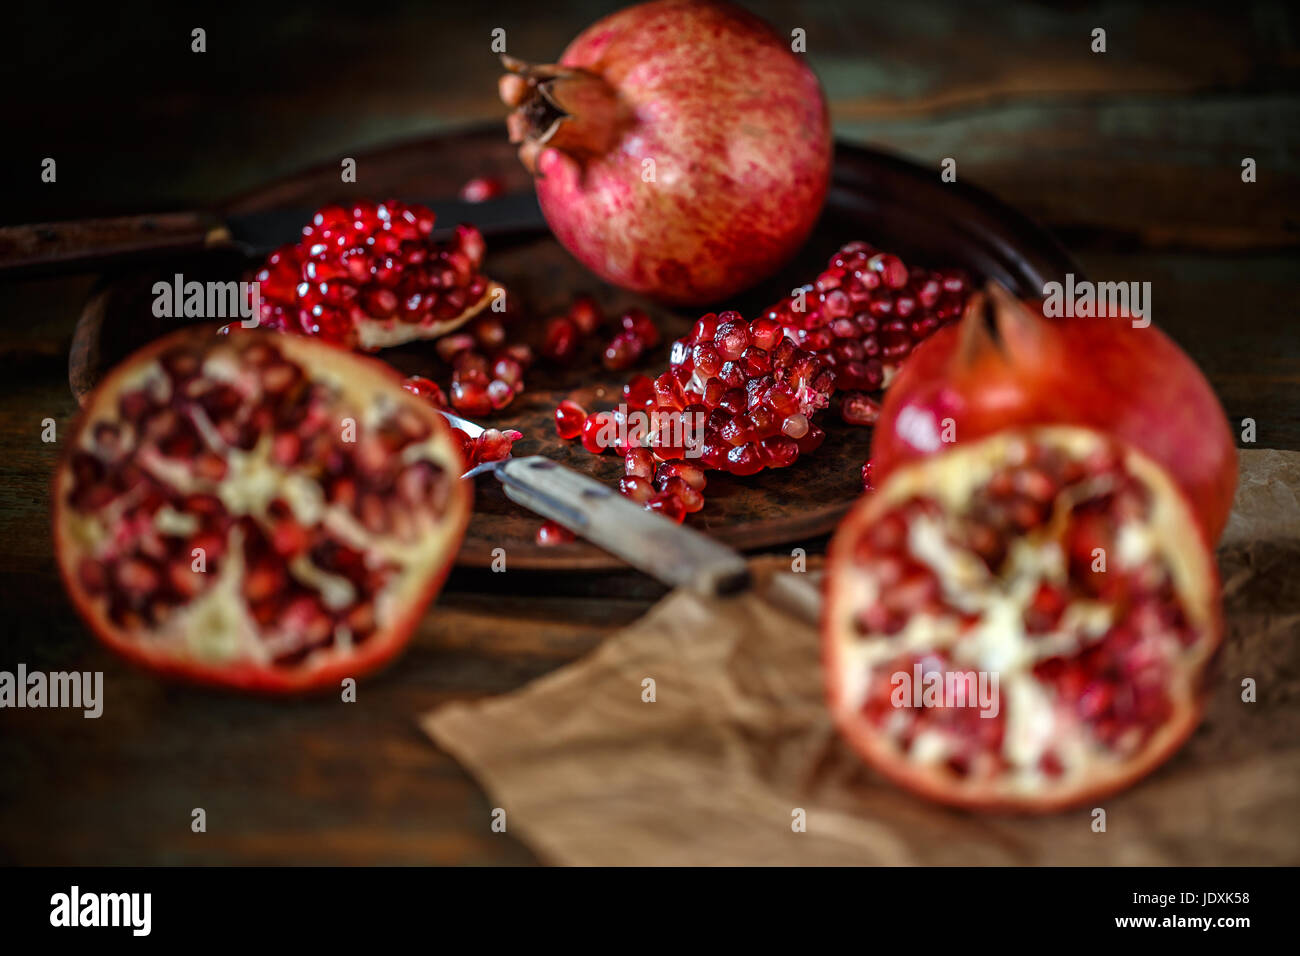 Fresh juicy pomegranate, whole and cut  on vintage background - Stock Image